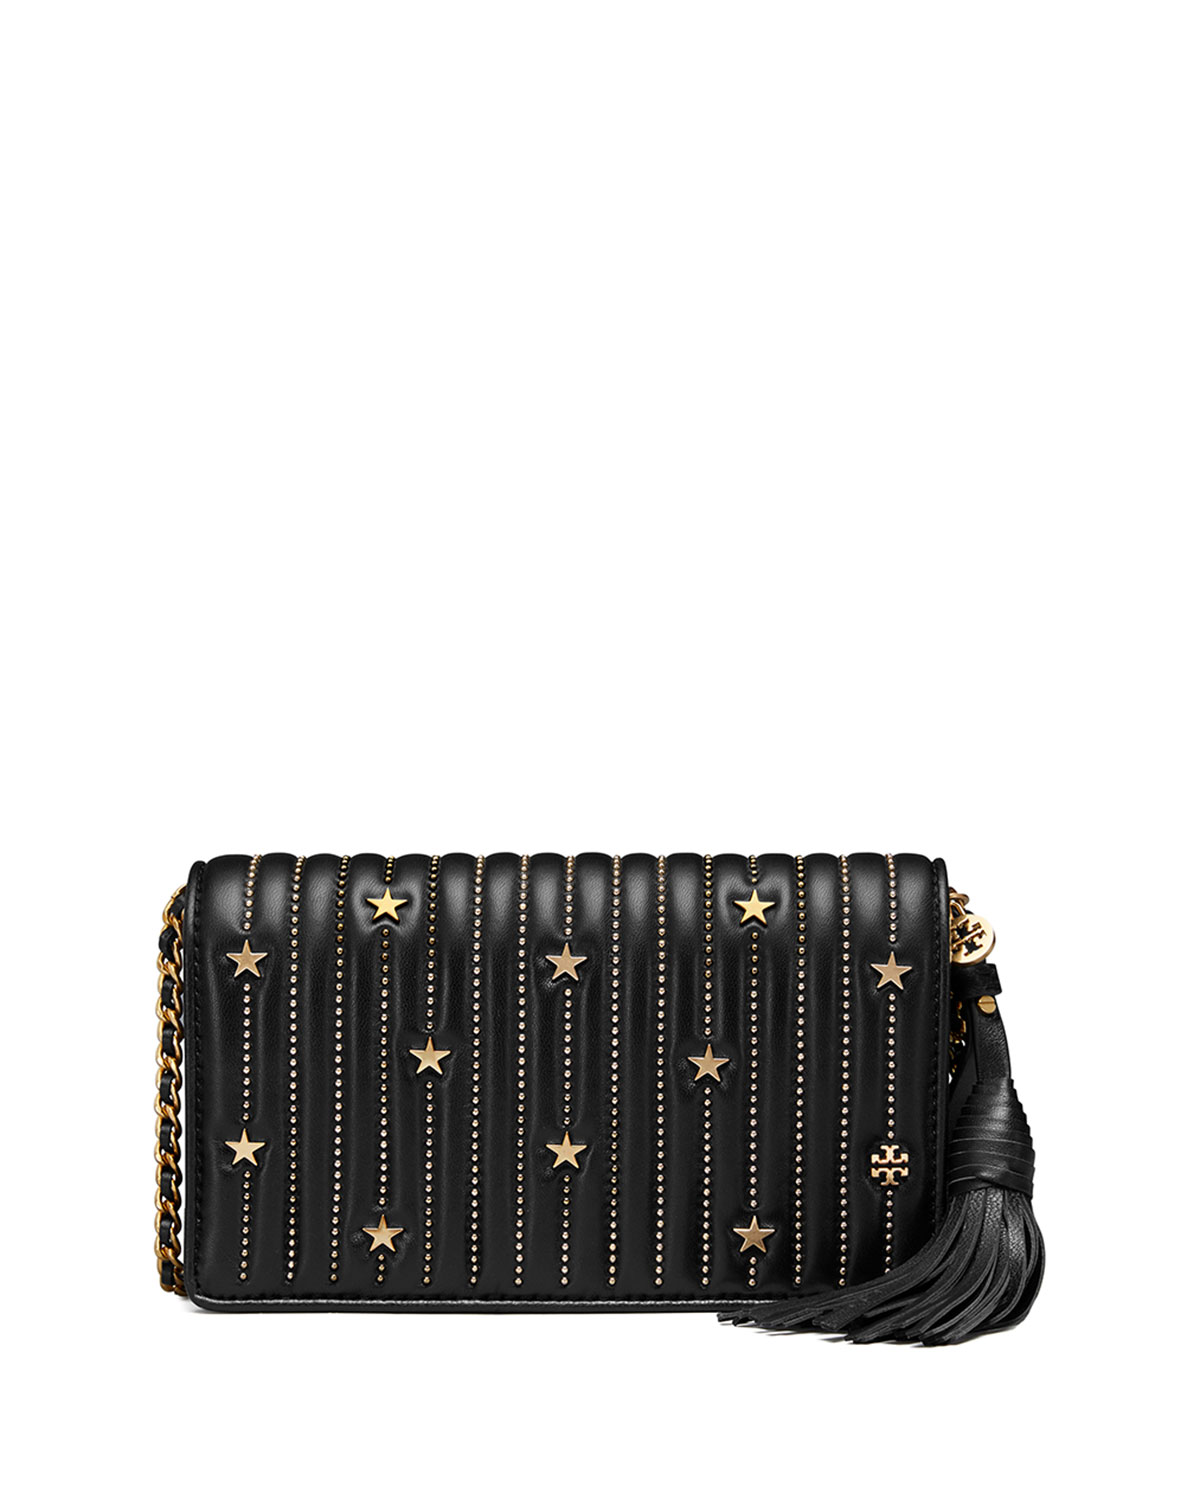 bac152b27594 Tory Burch Star Stud Flat Crossbody Wallet